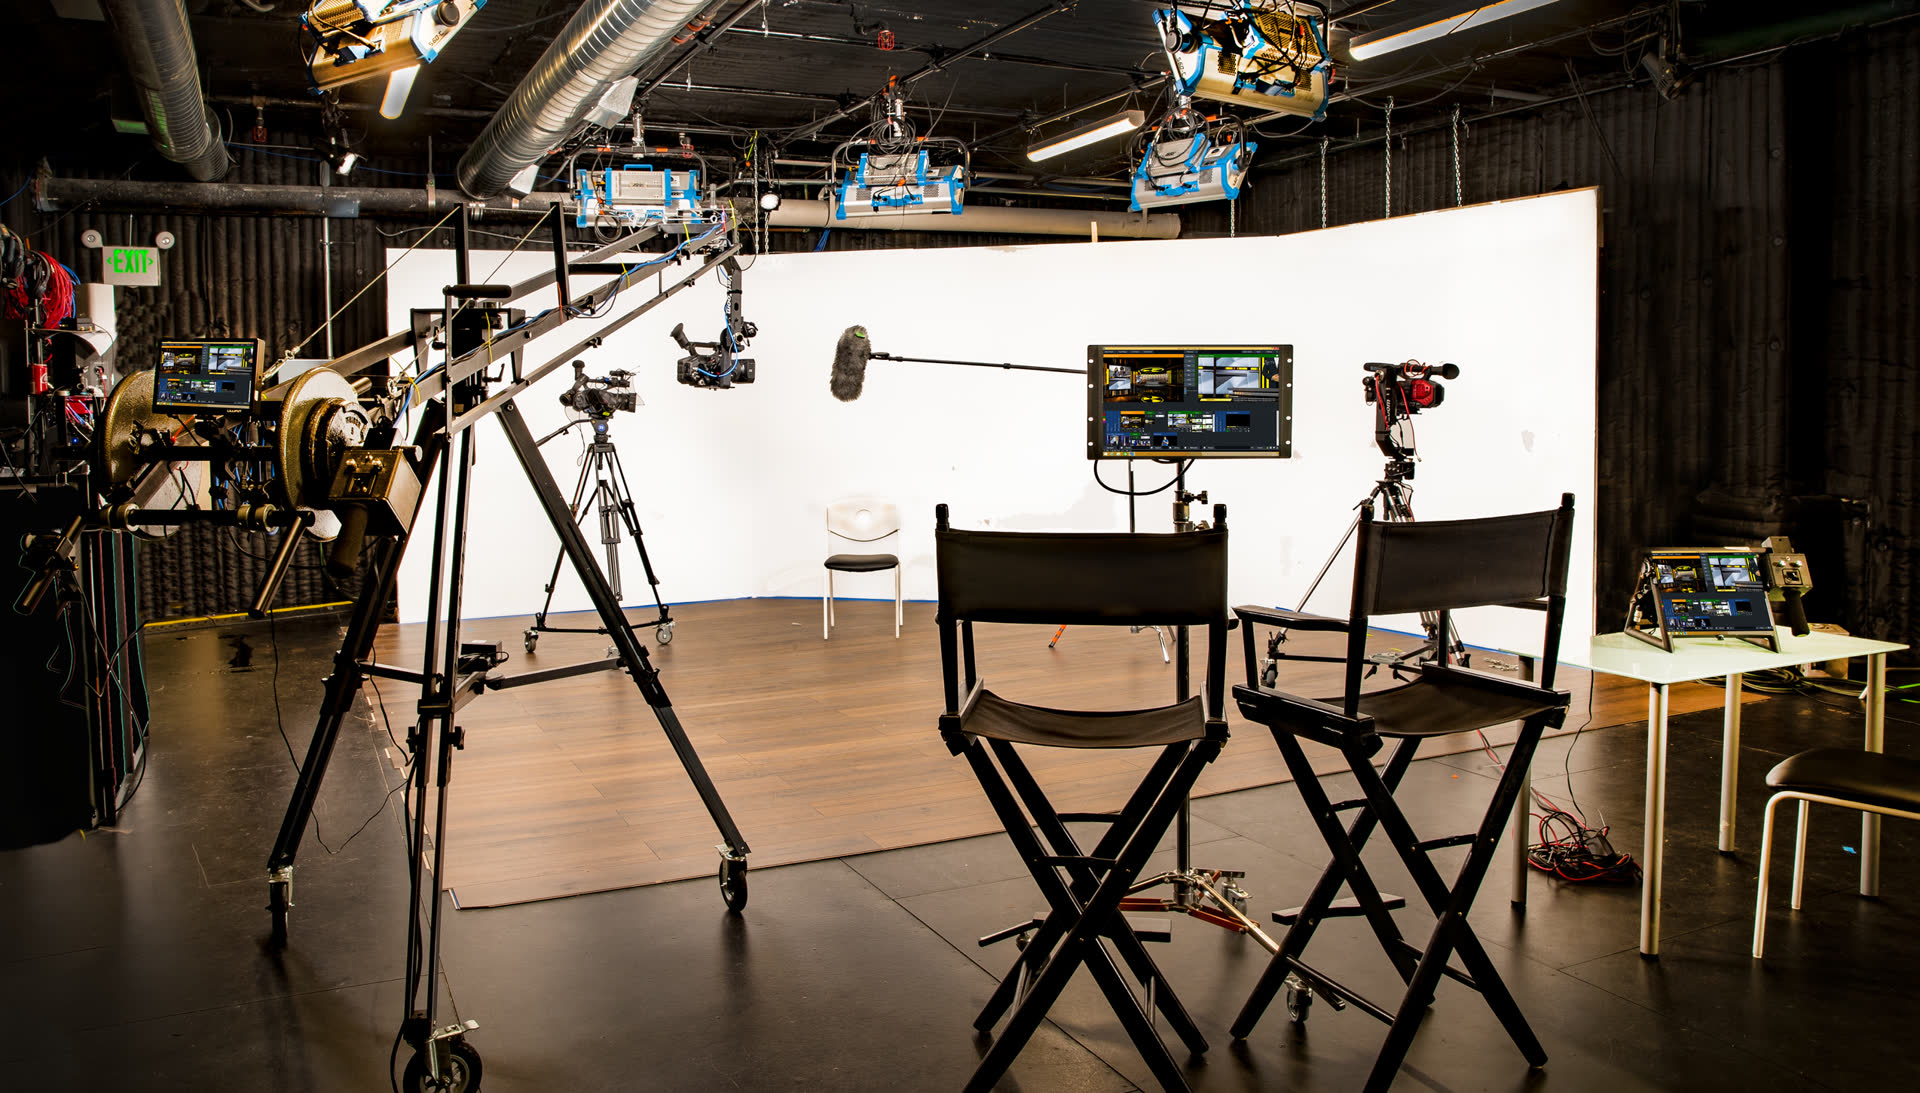 Video Studio spaces